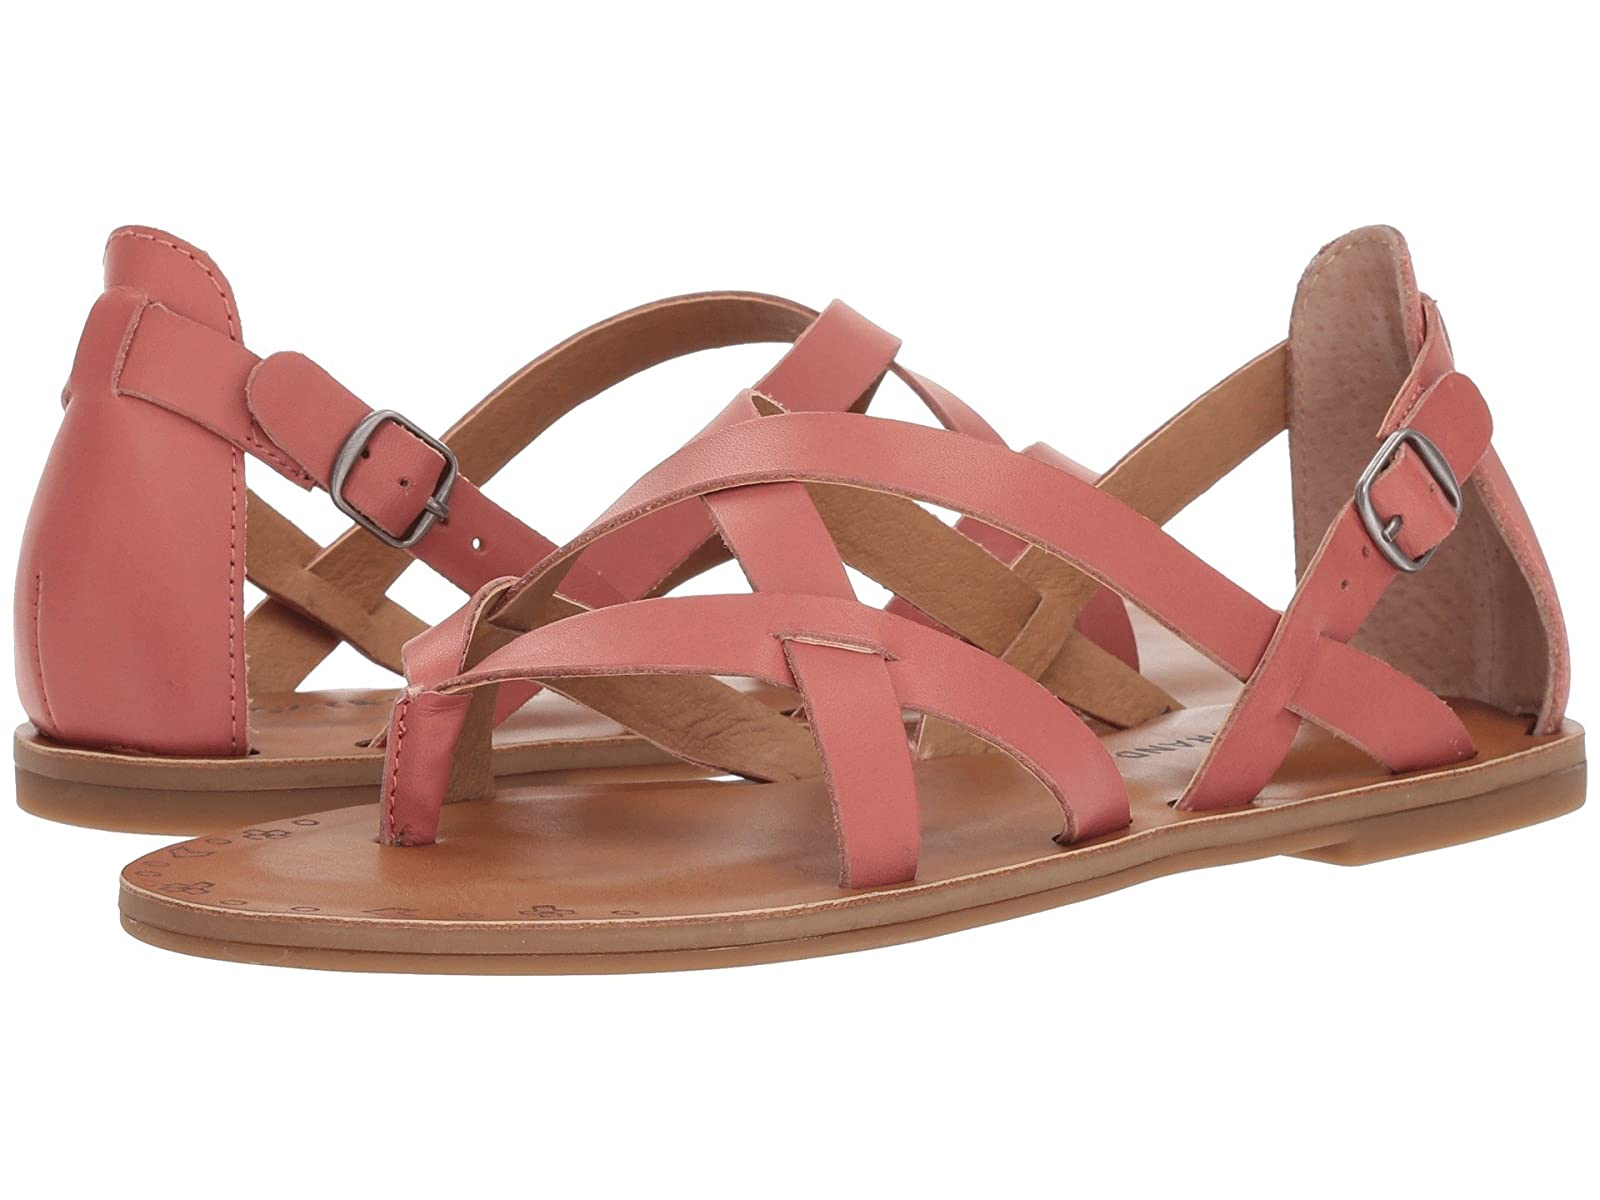 Lucky Brand AinsleyCheap and distinctive eye-catching shoes